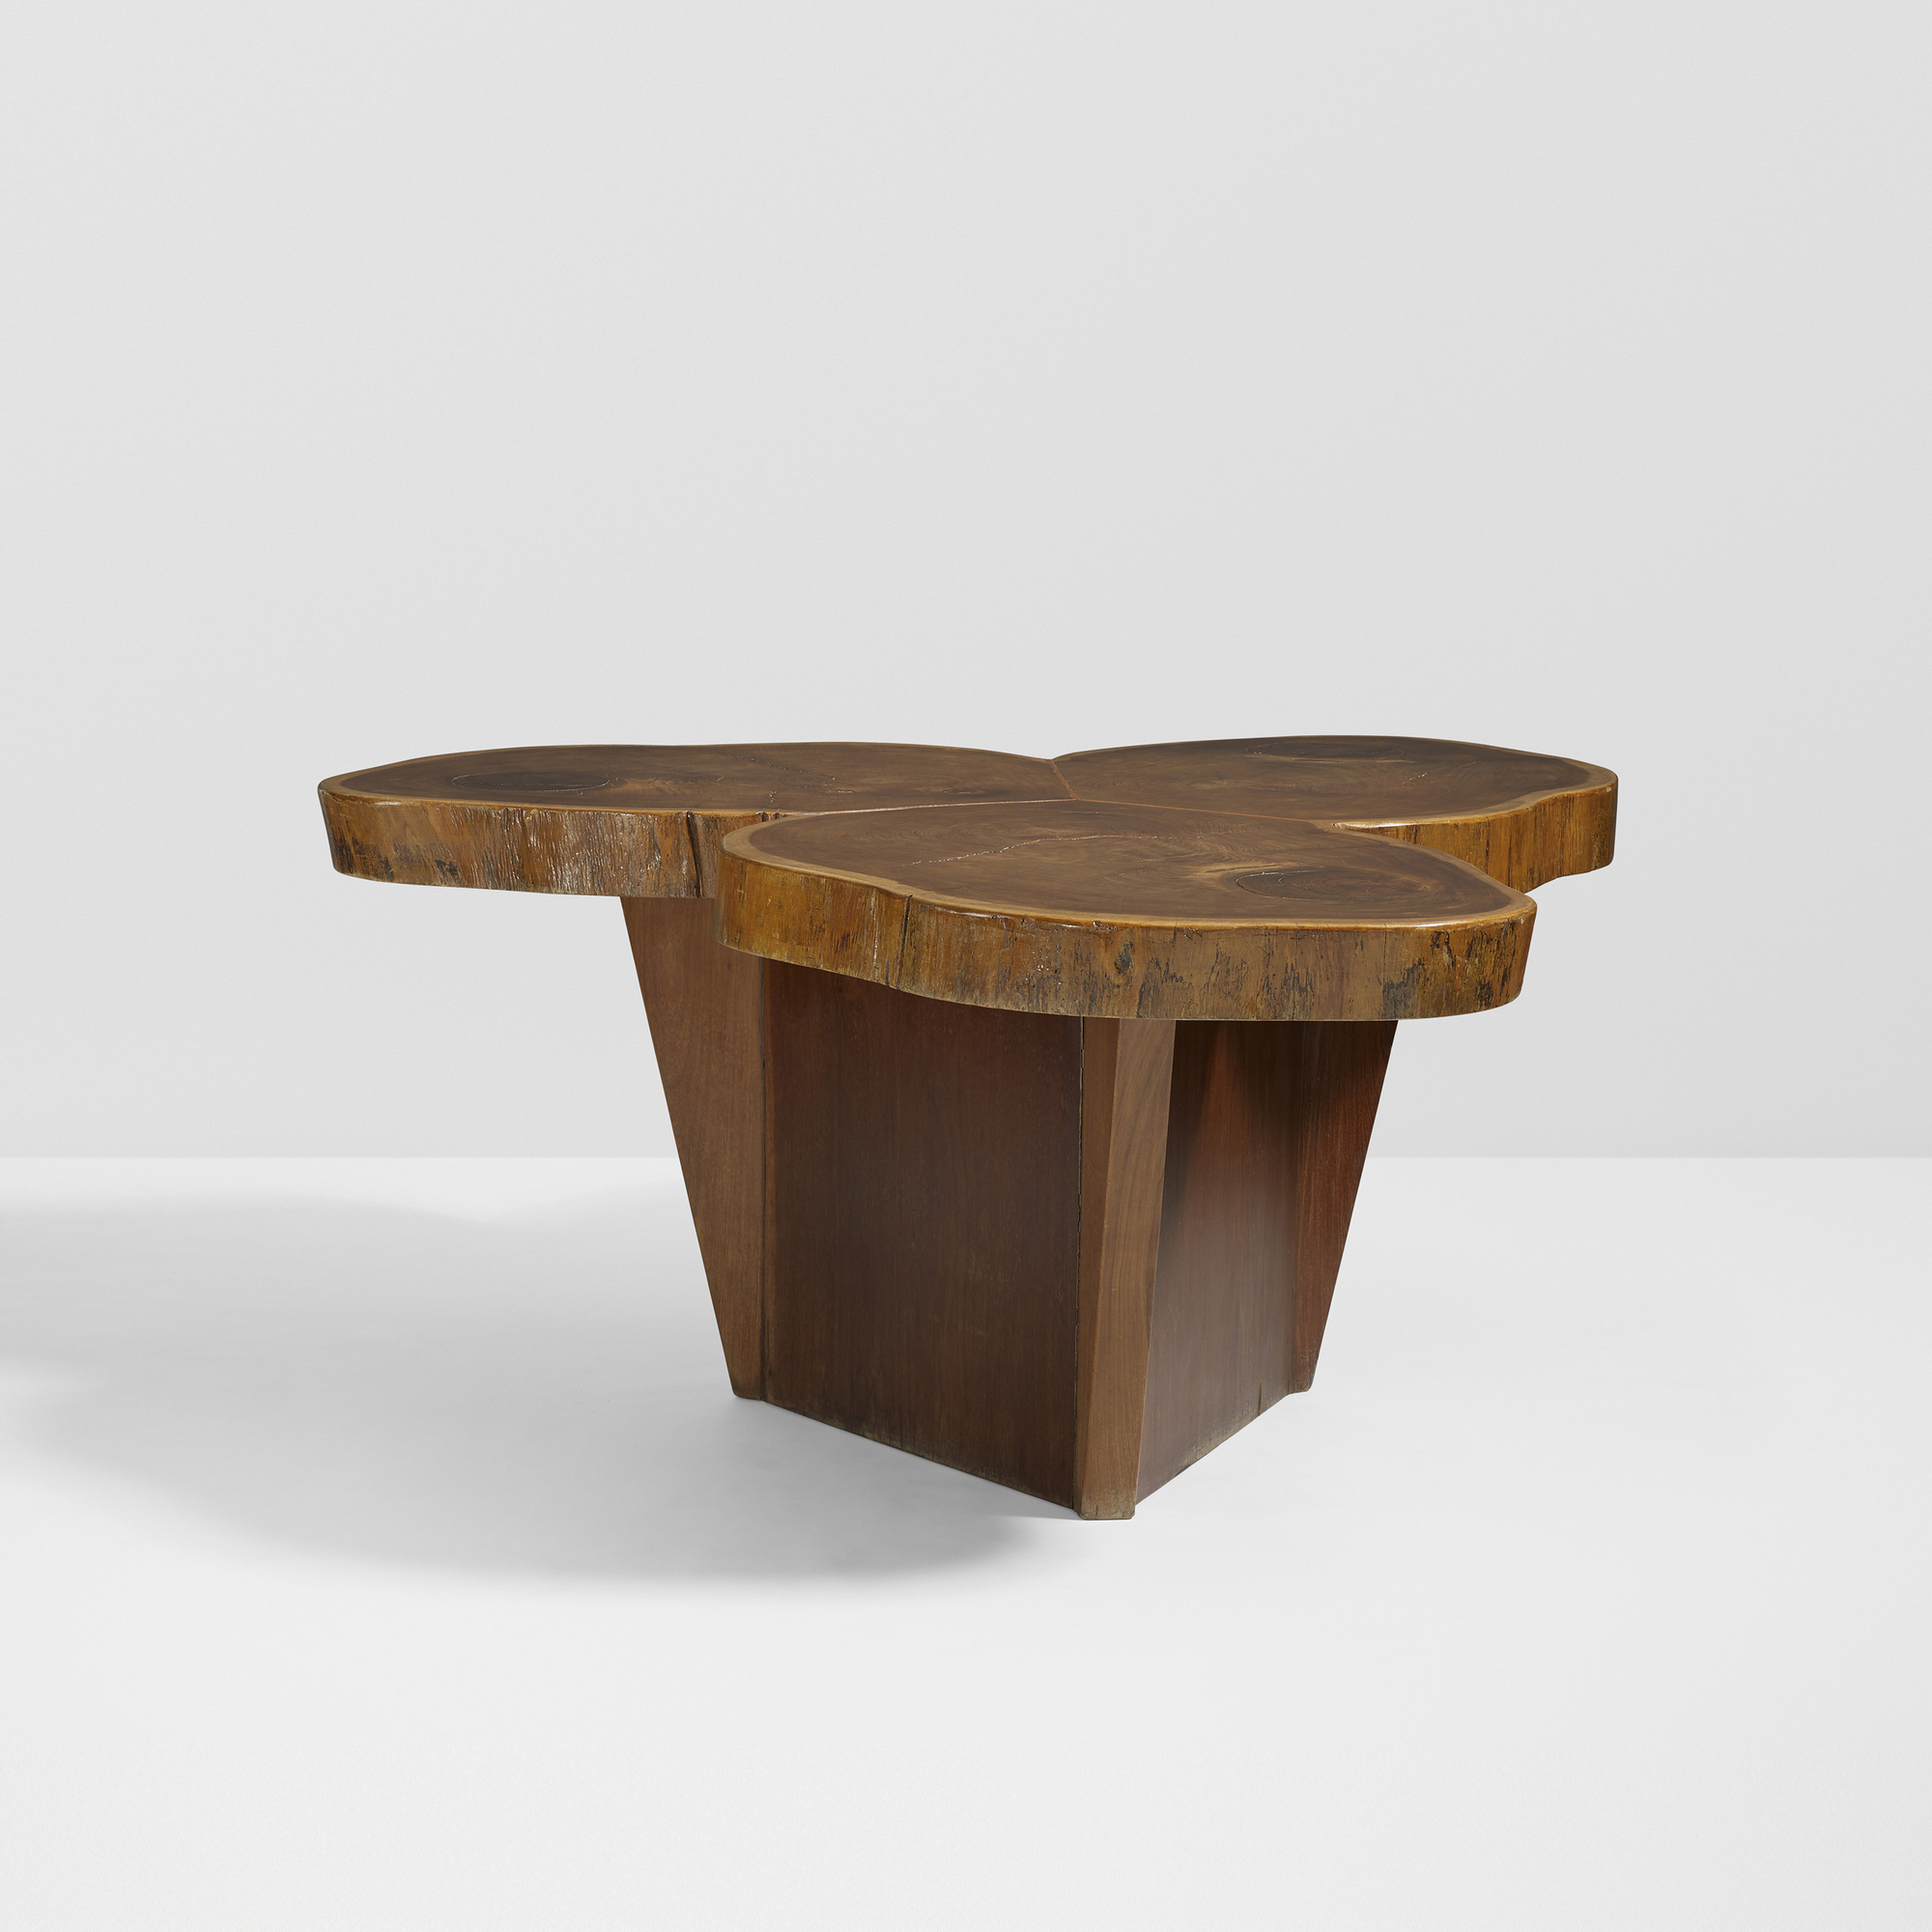 4 José Zanine Caldas Important Custom dining table for the